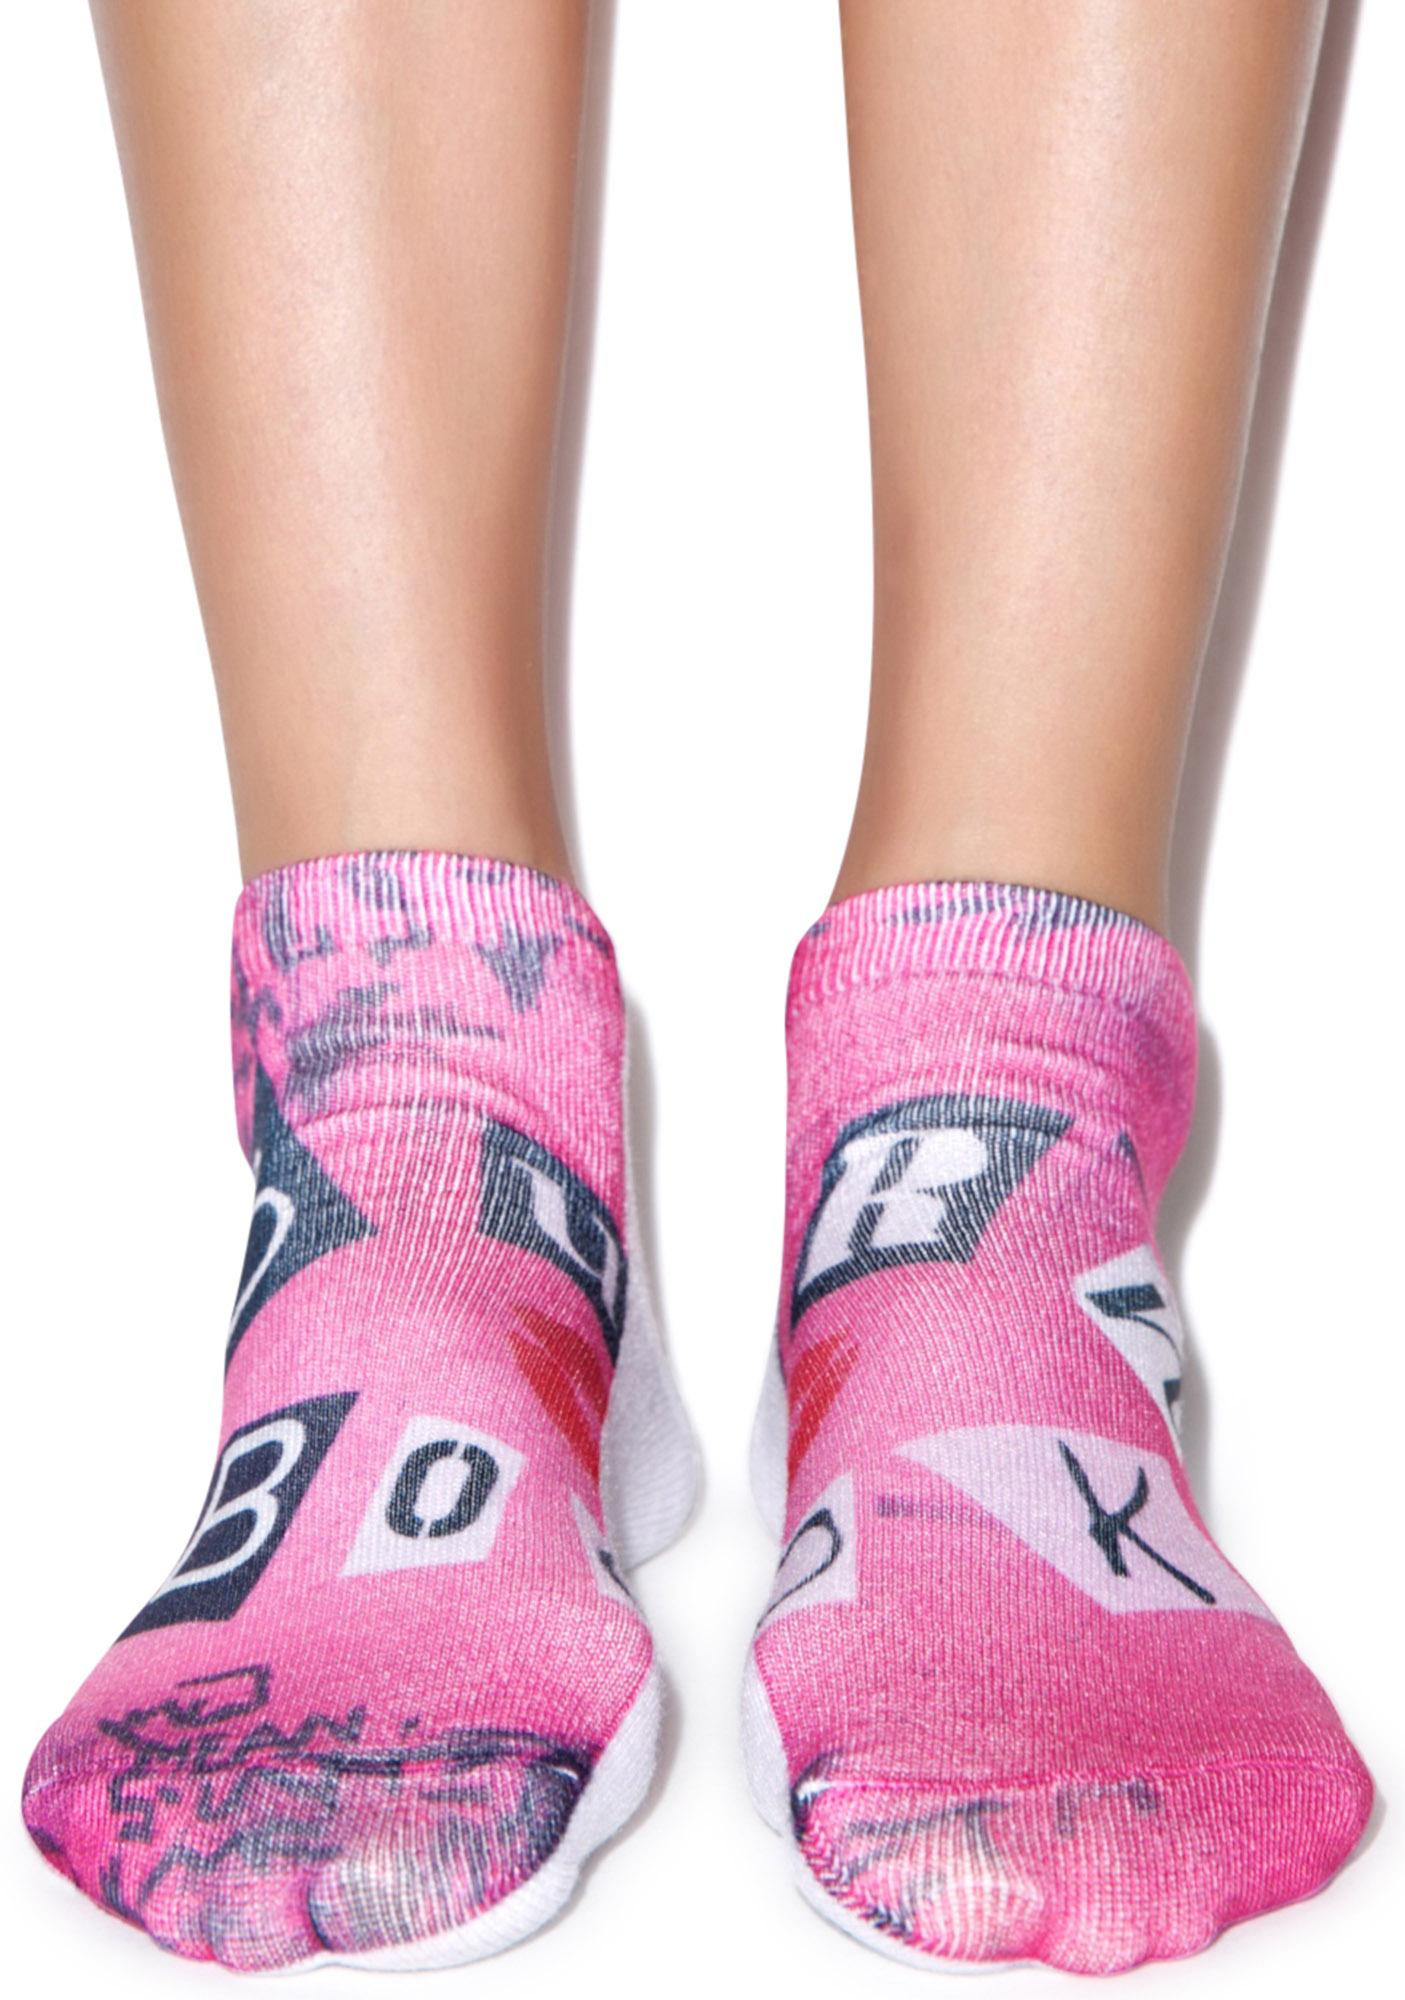 The Burn Book Ankle Socks